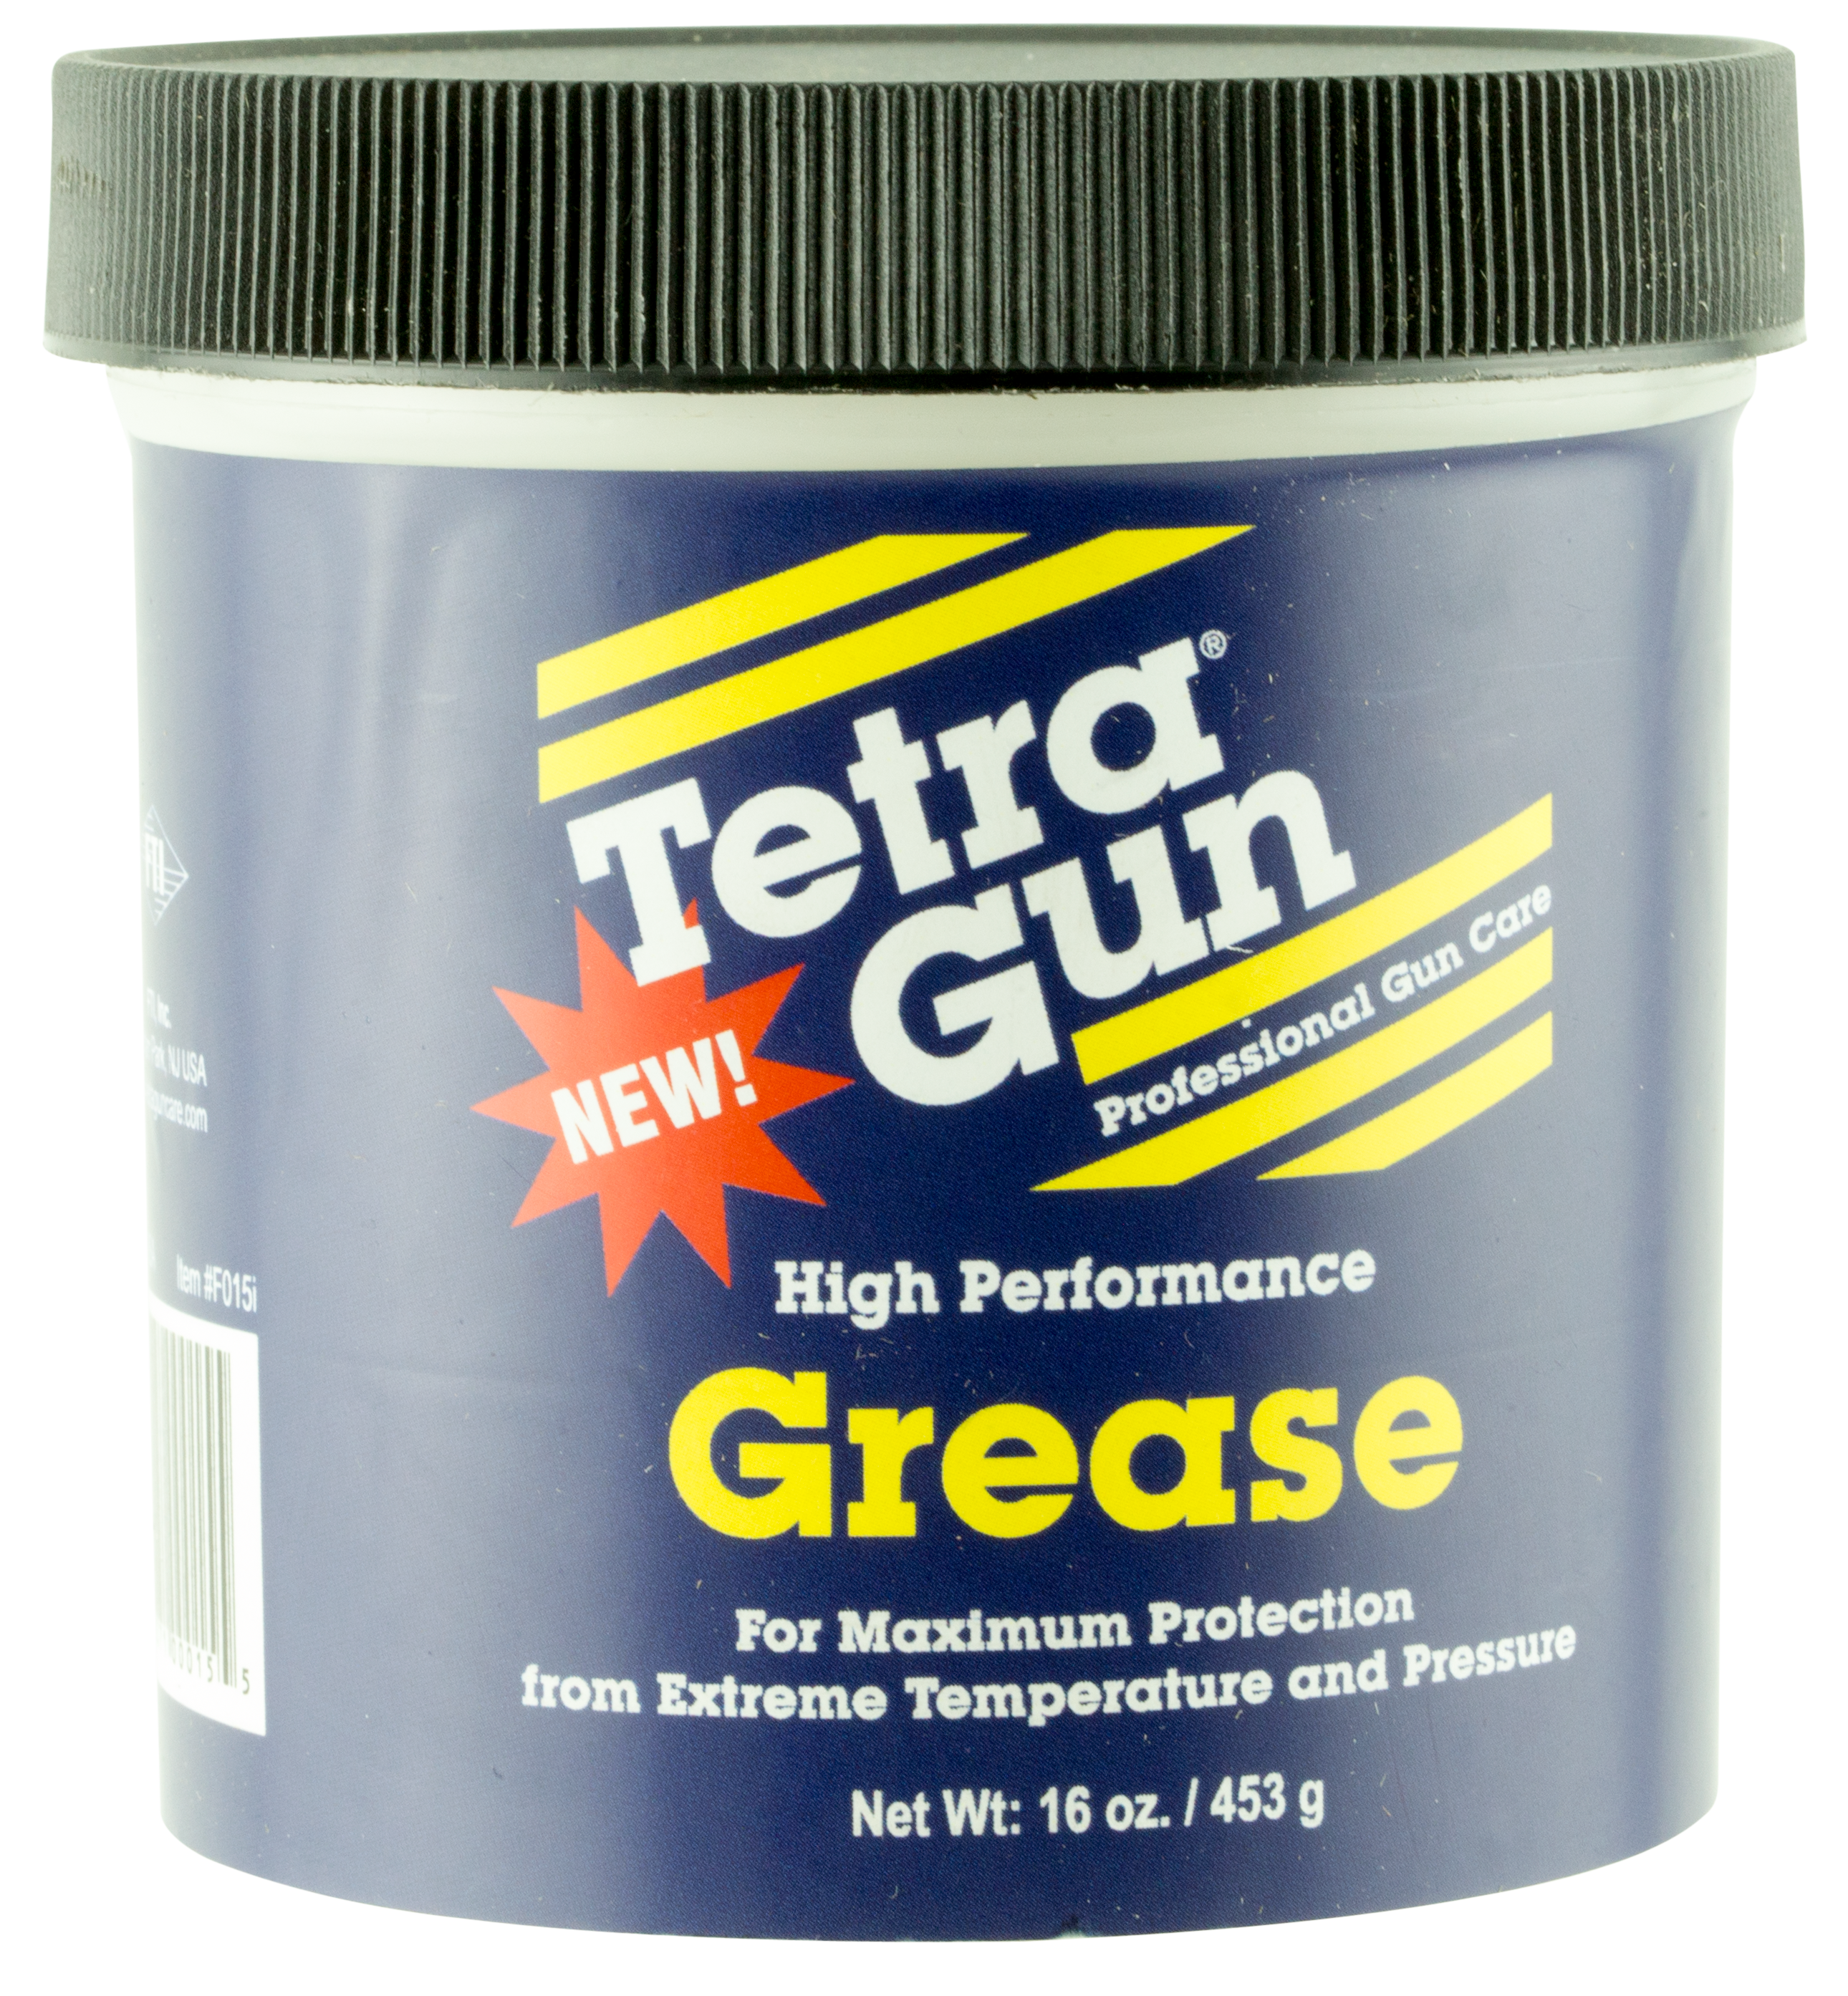 Tetra 015I Gun Cleaning Grease 16 oz